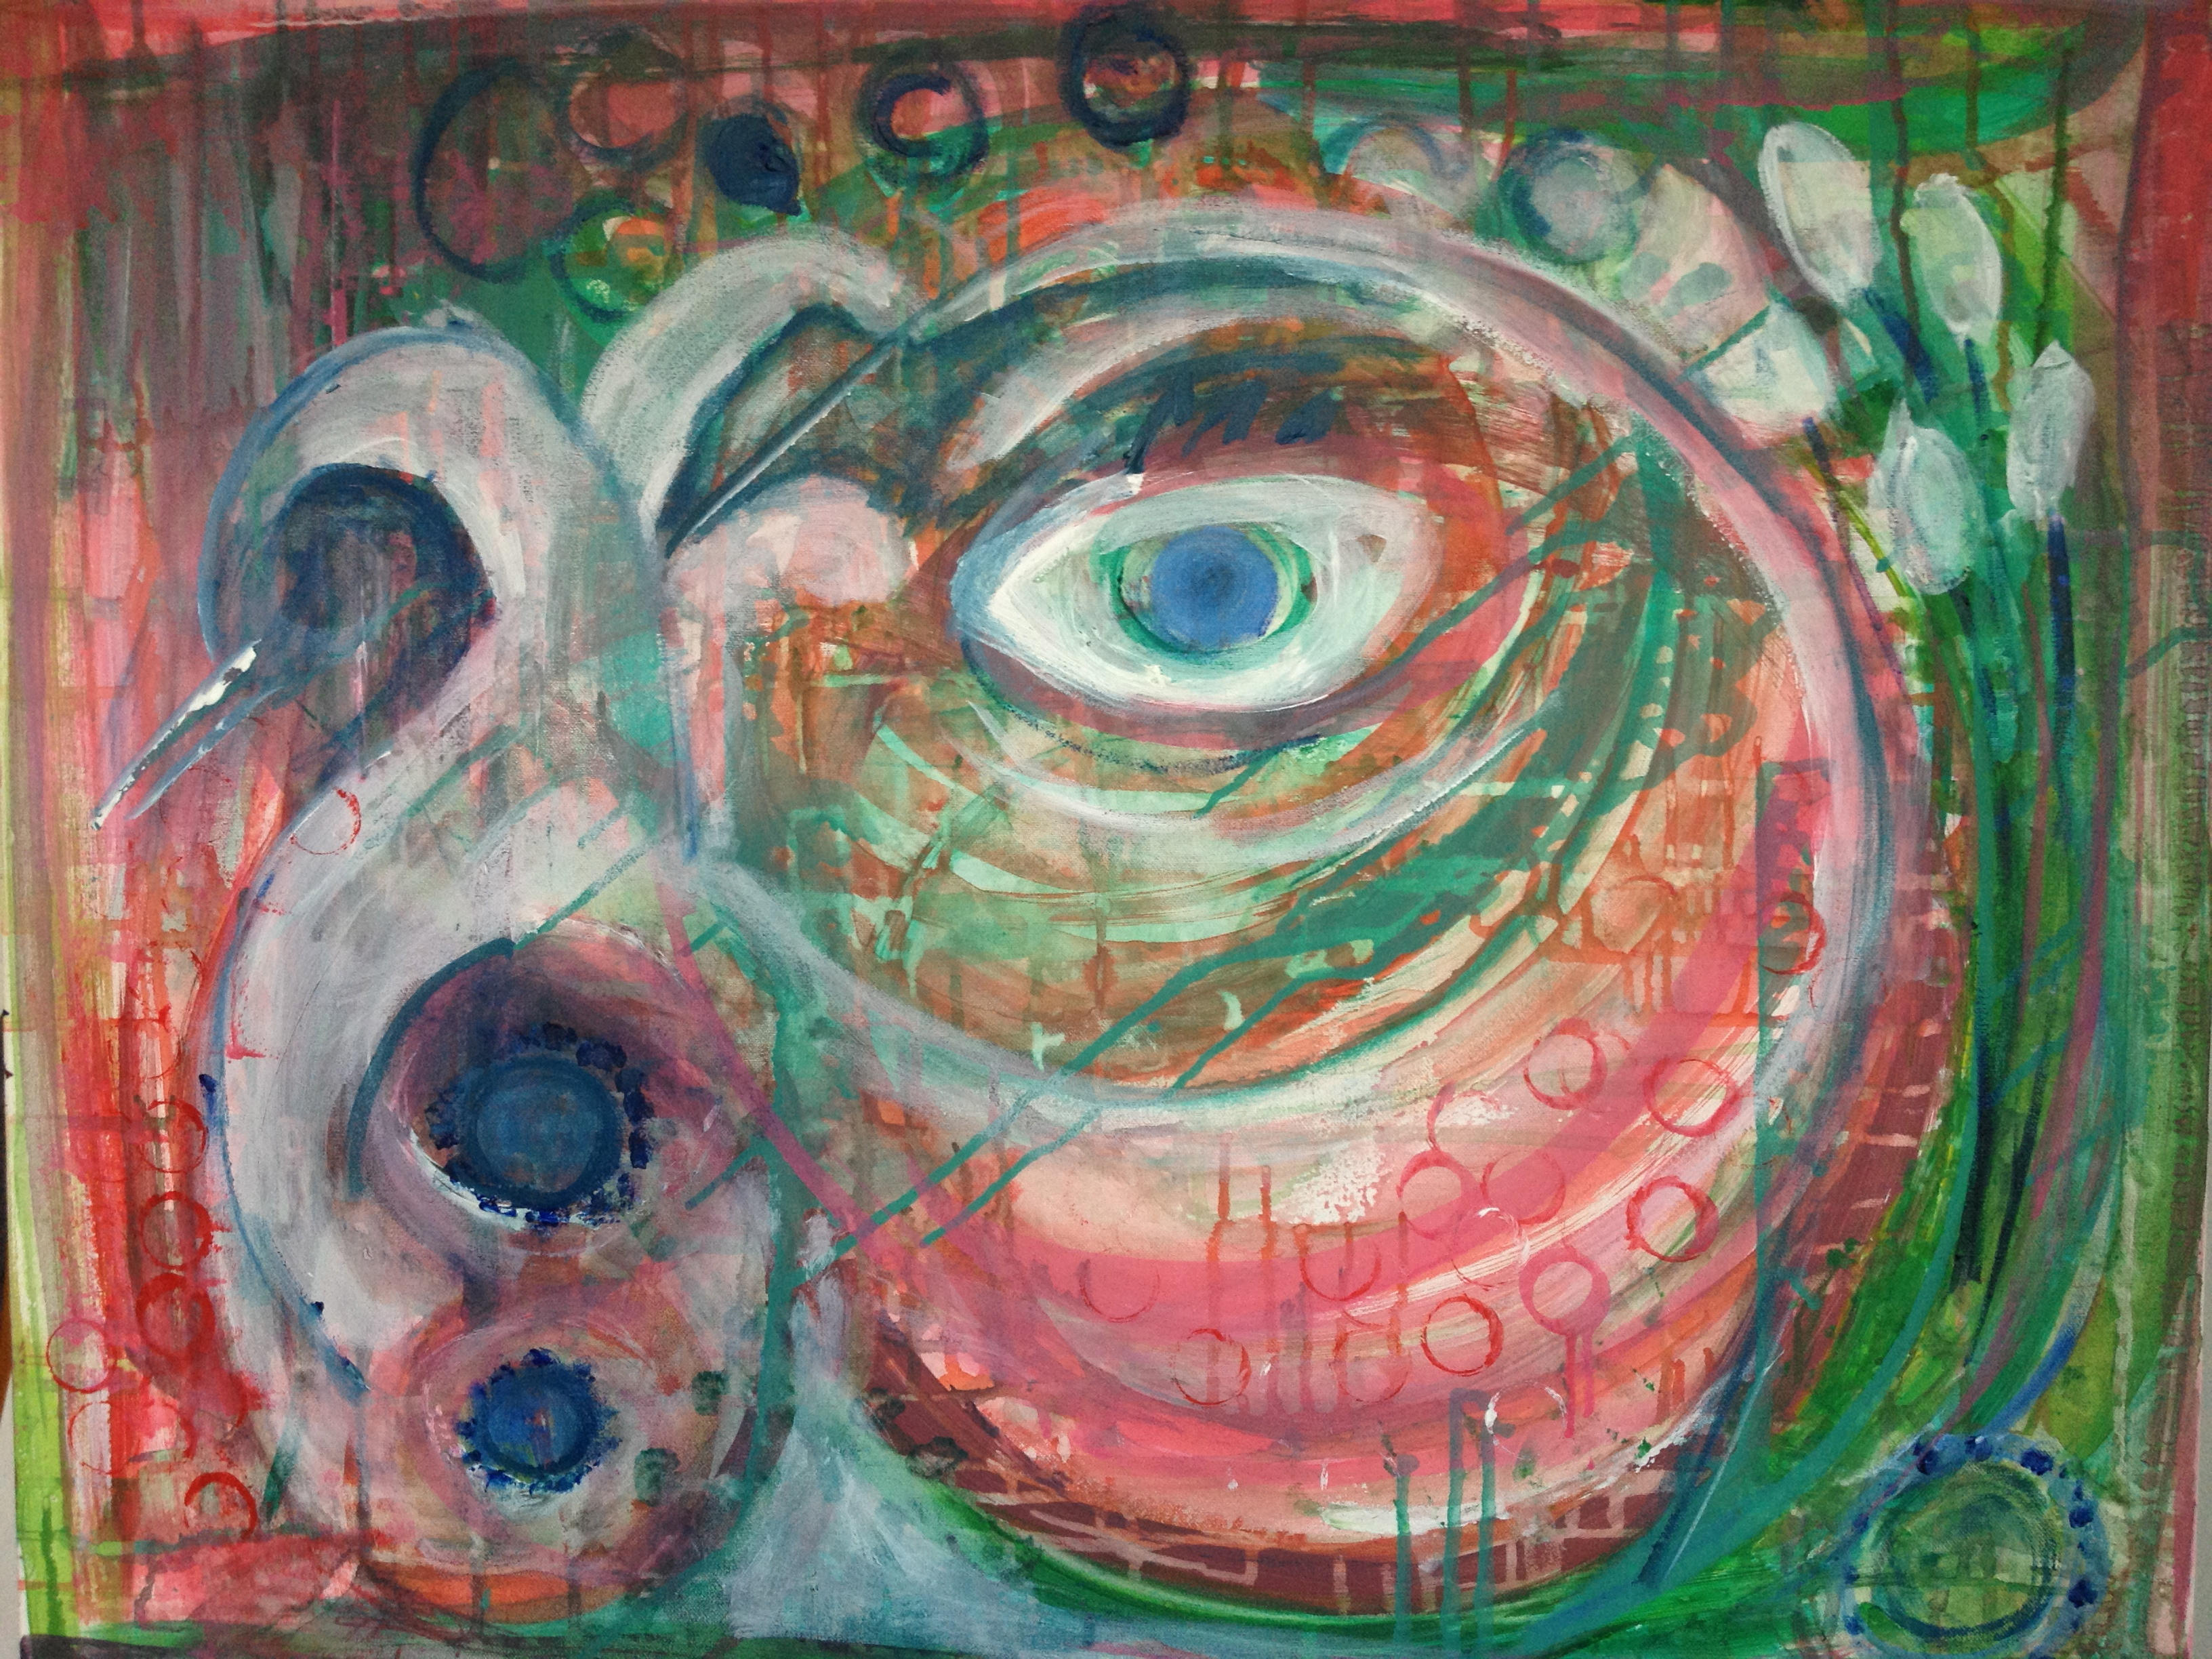 intuitive painting, in progress, process painting, art therapy